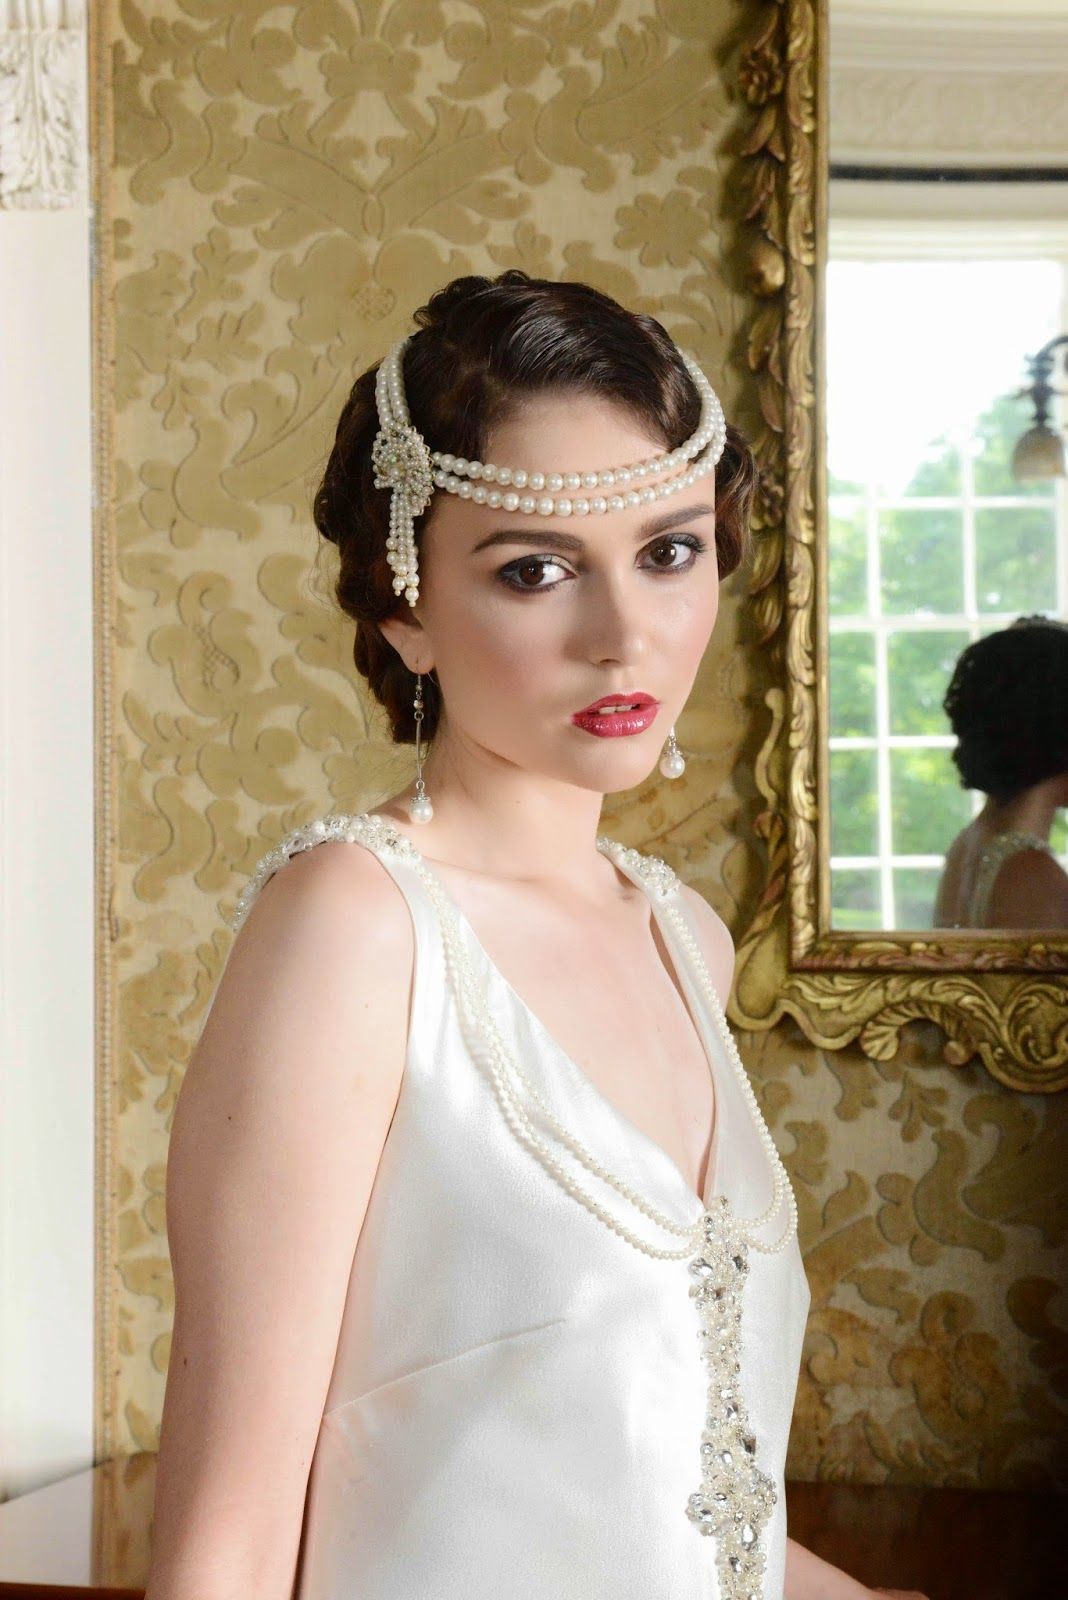 1920 hair and makeup styles - google search | hair and makeup